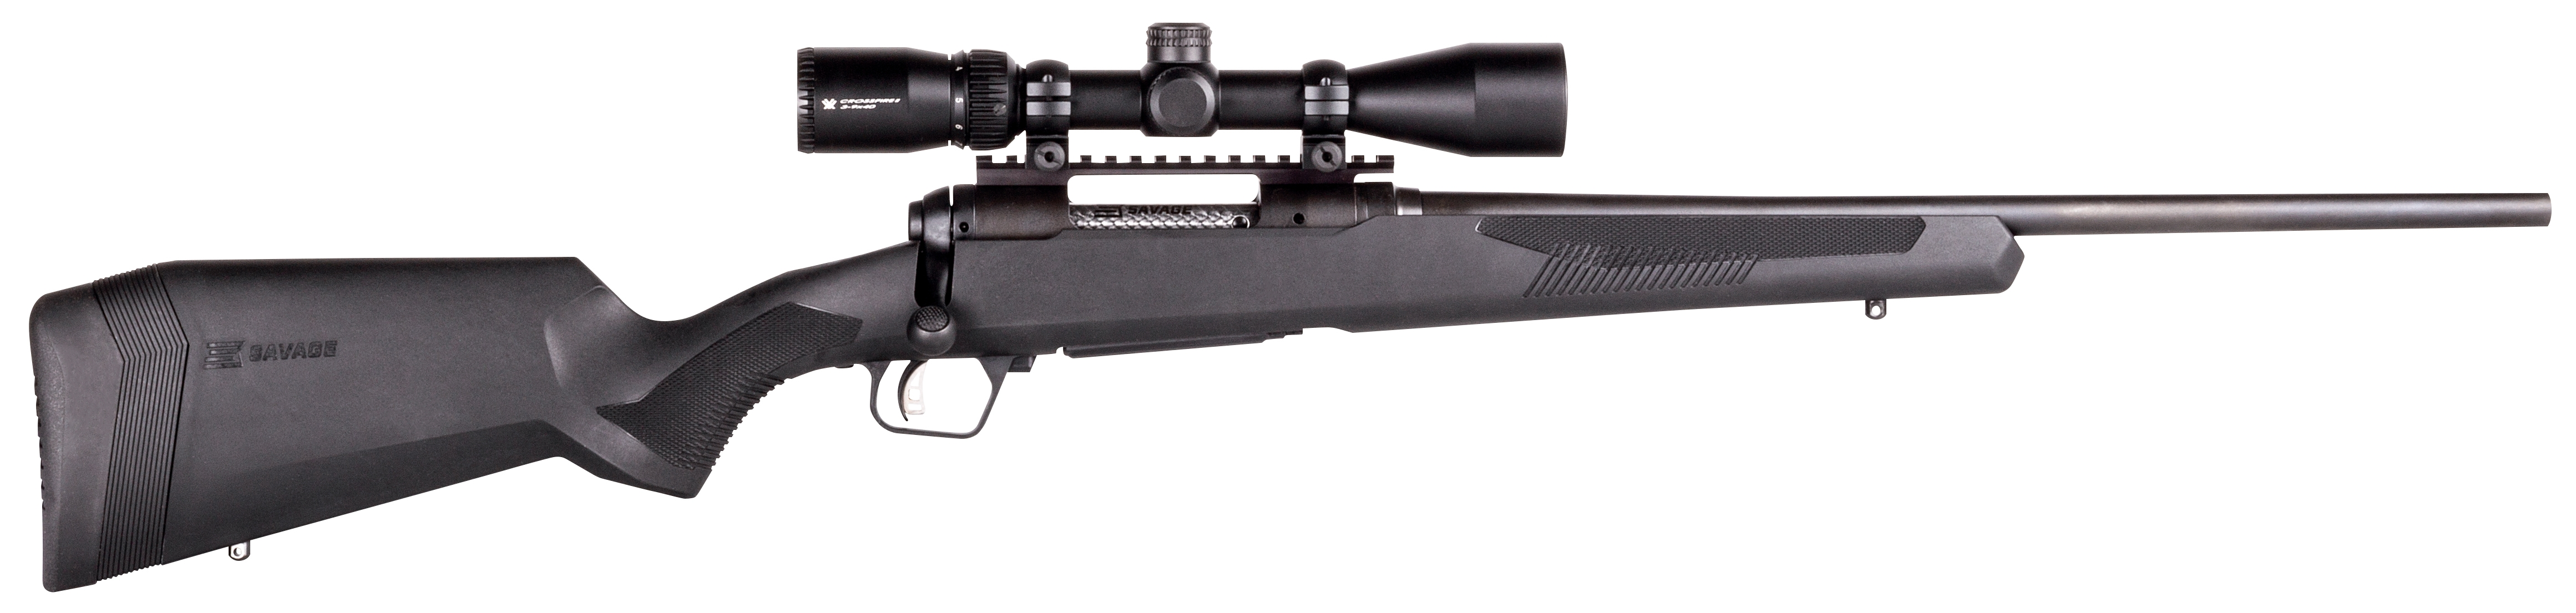 Savage Arms 110 APEX HUNTER XP 223 REM